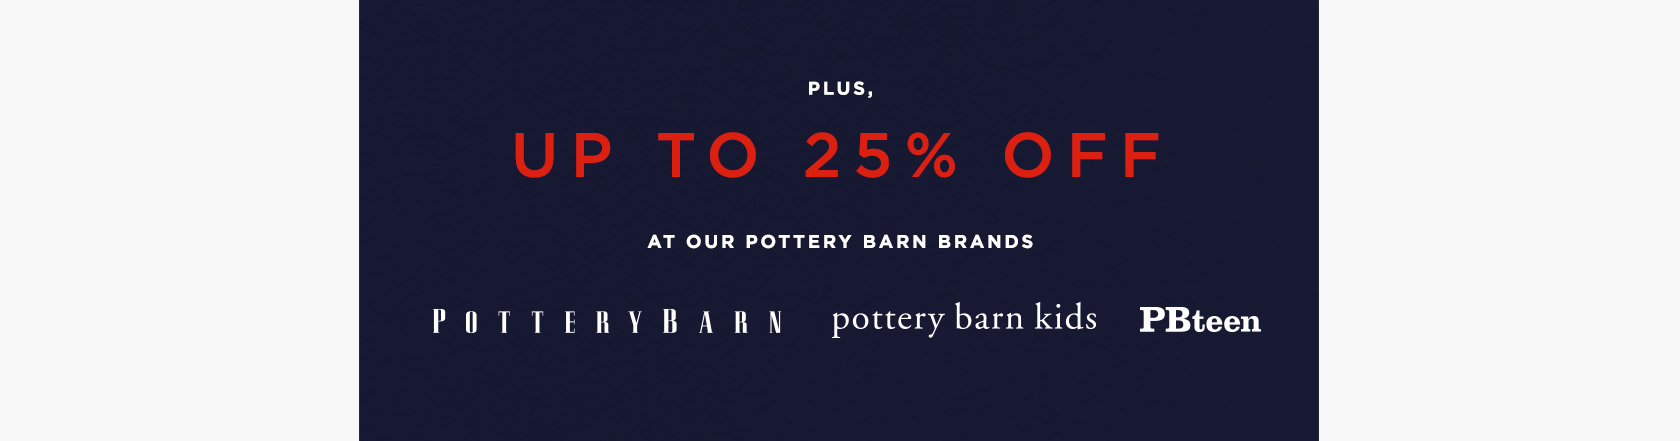 Buy More Save More At Our Pottery Barn Brands